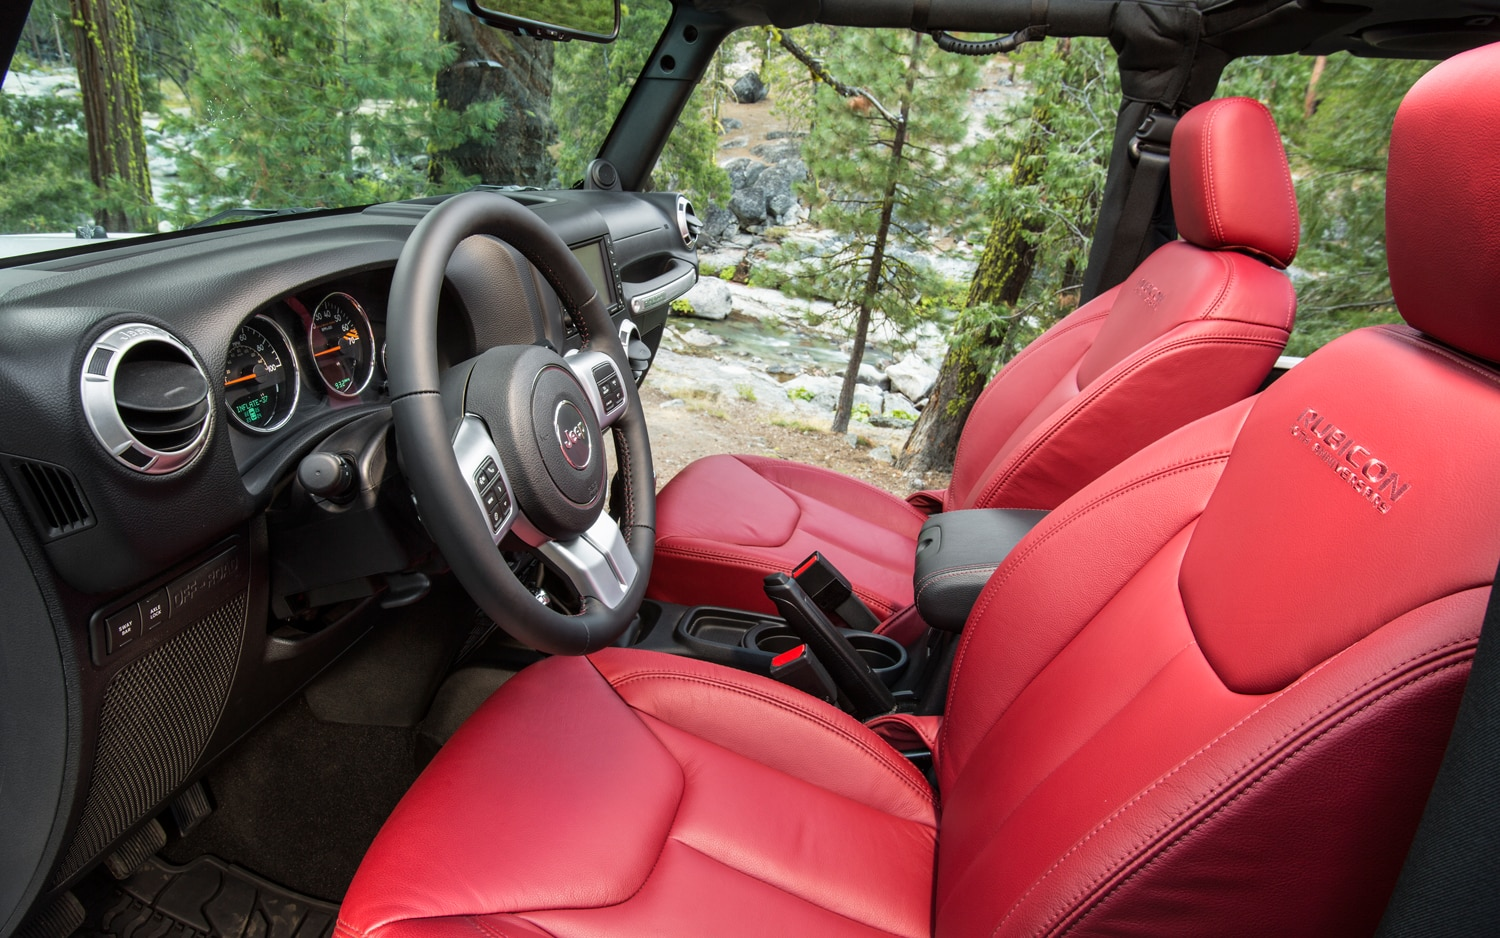 2013 Jeep Wrangler Rubicon Interior